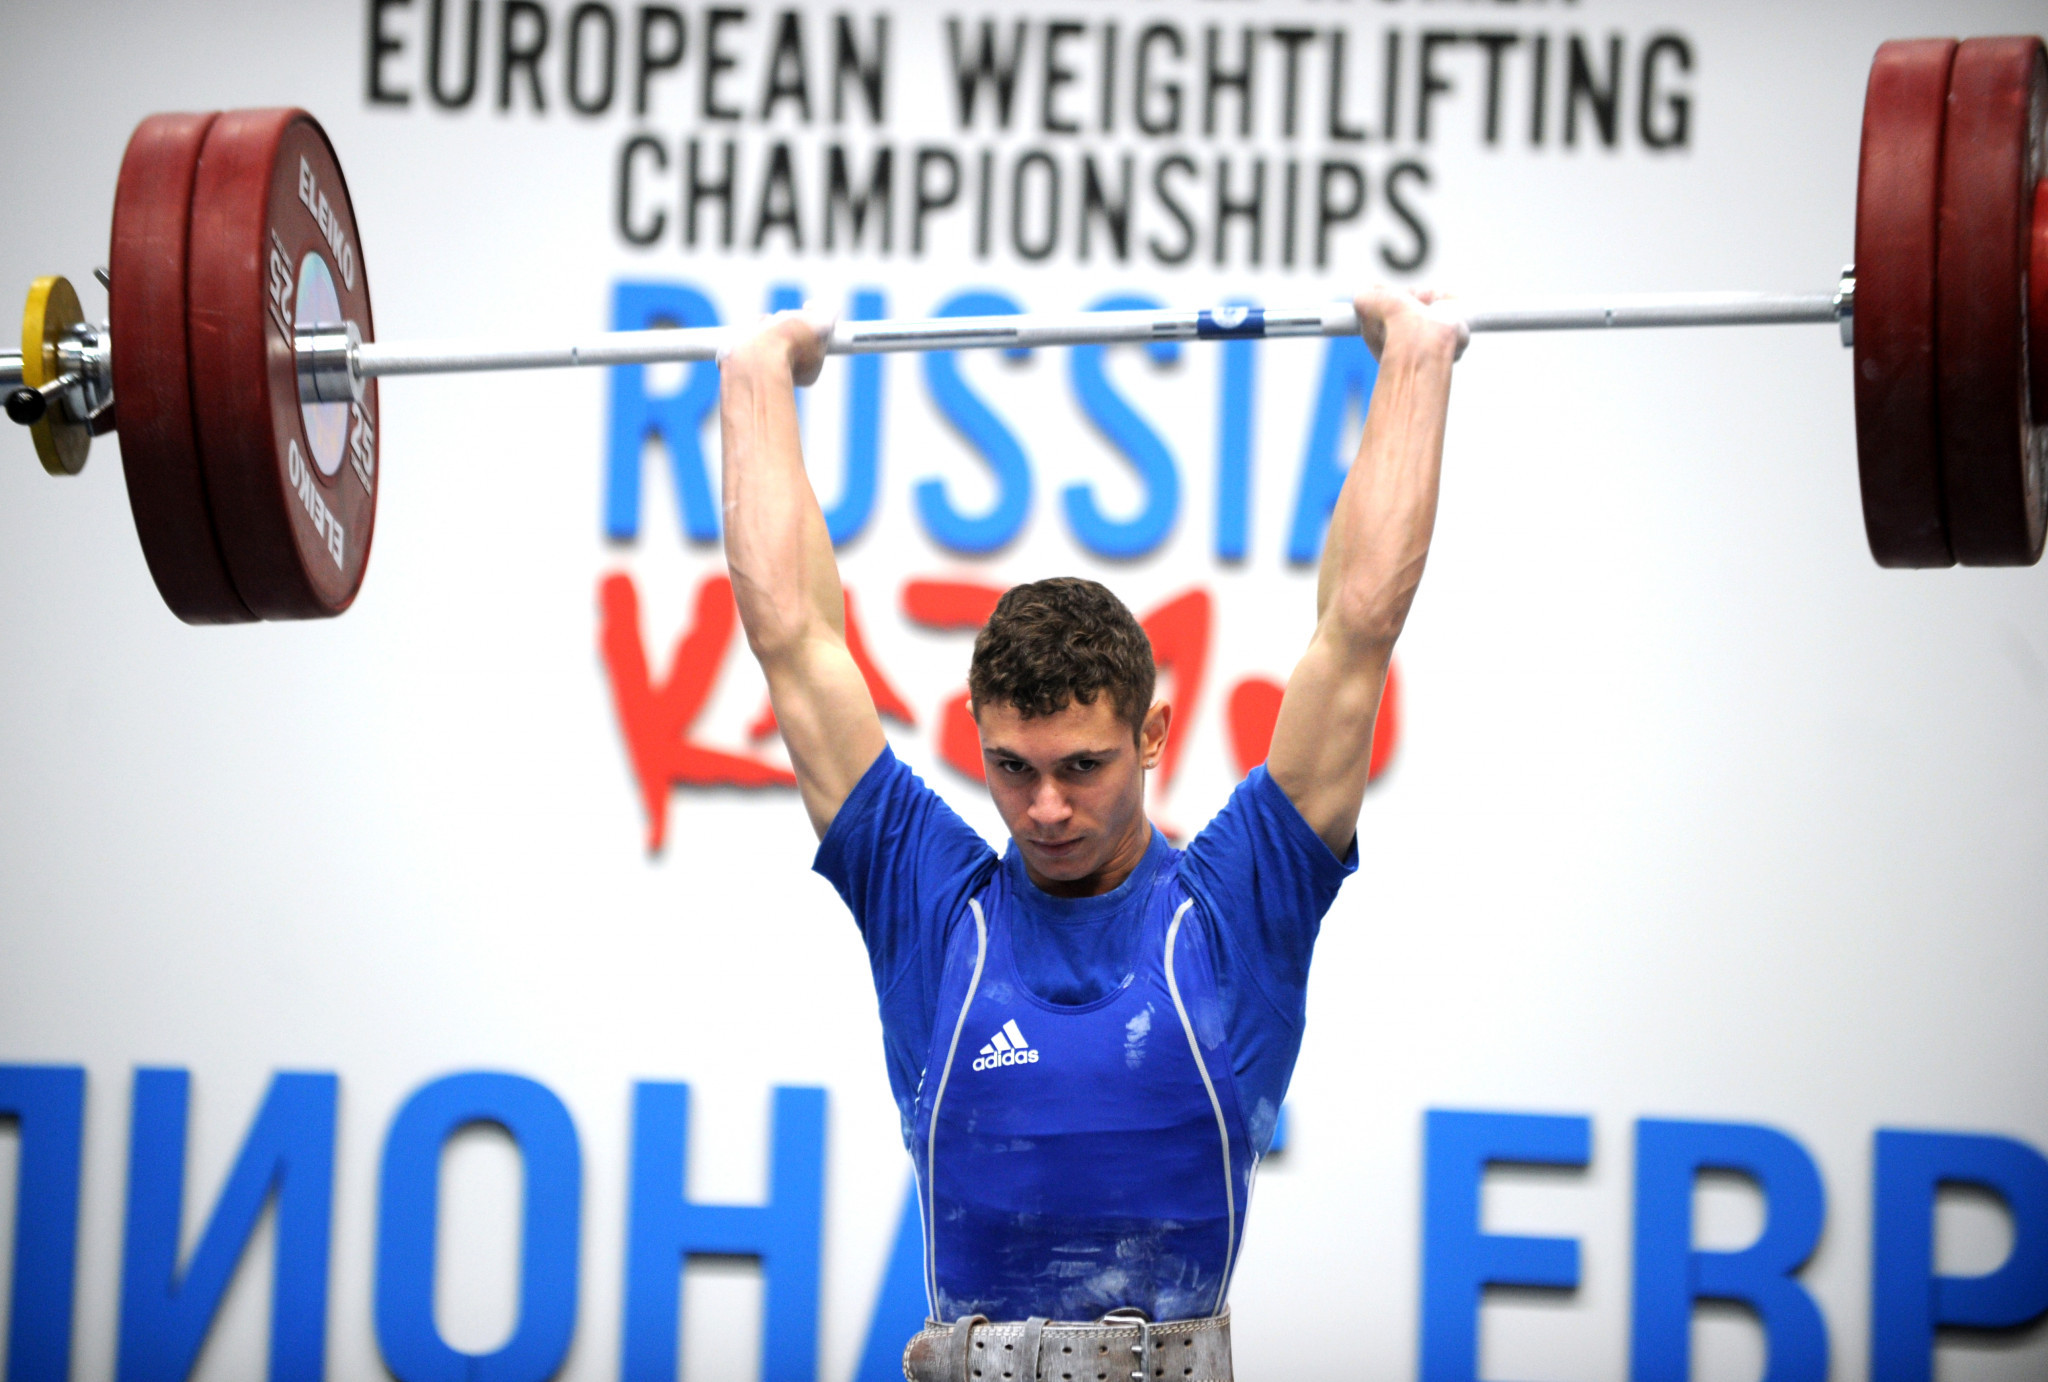 Romanian becomes latest weightlifter to be disqualified from London 2012 Olympics for doping